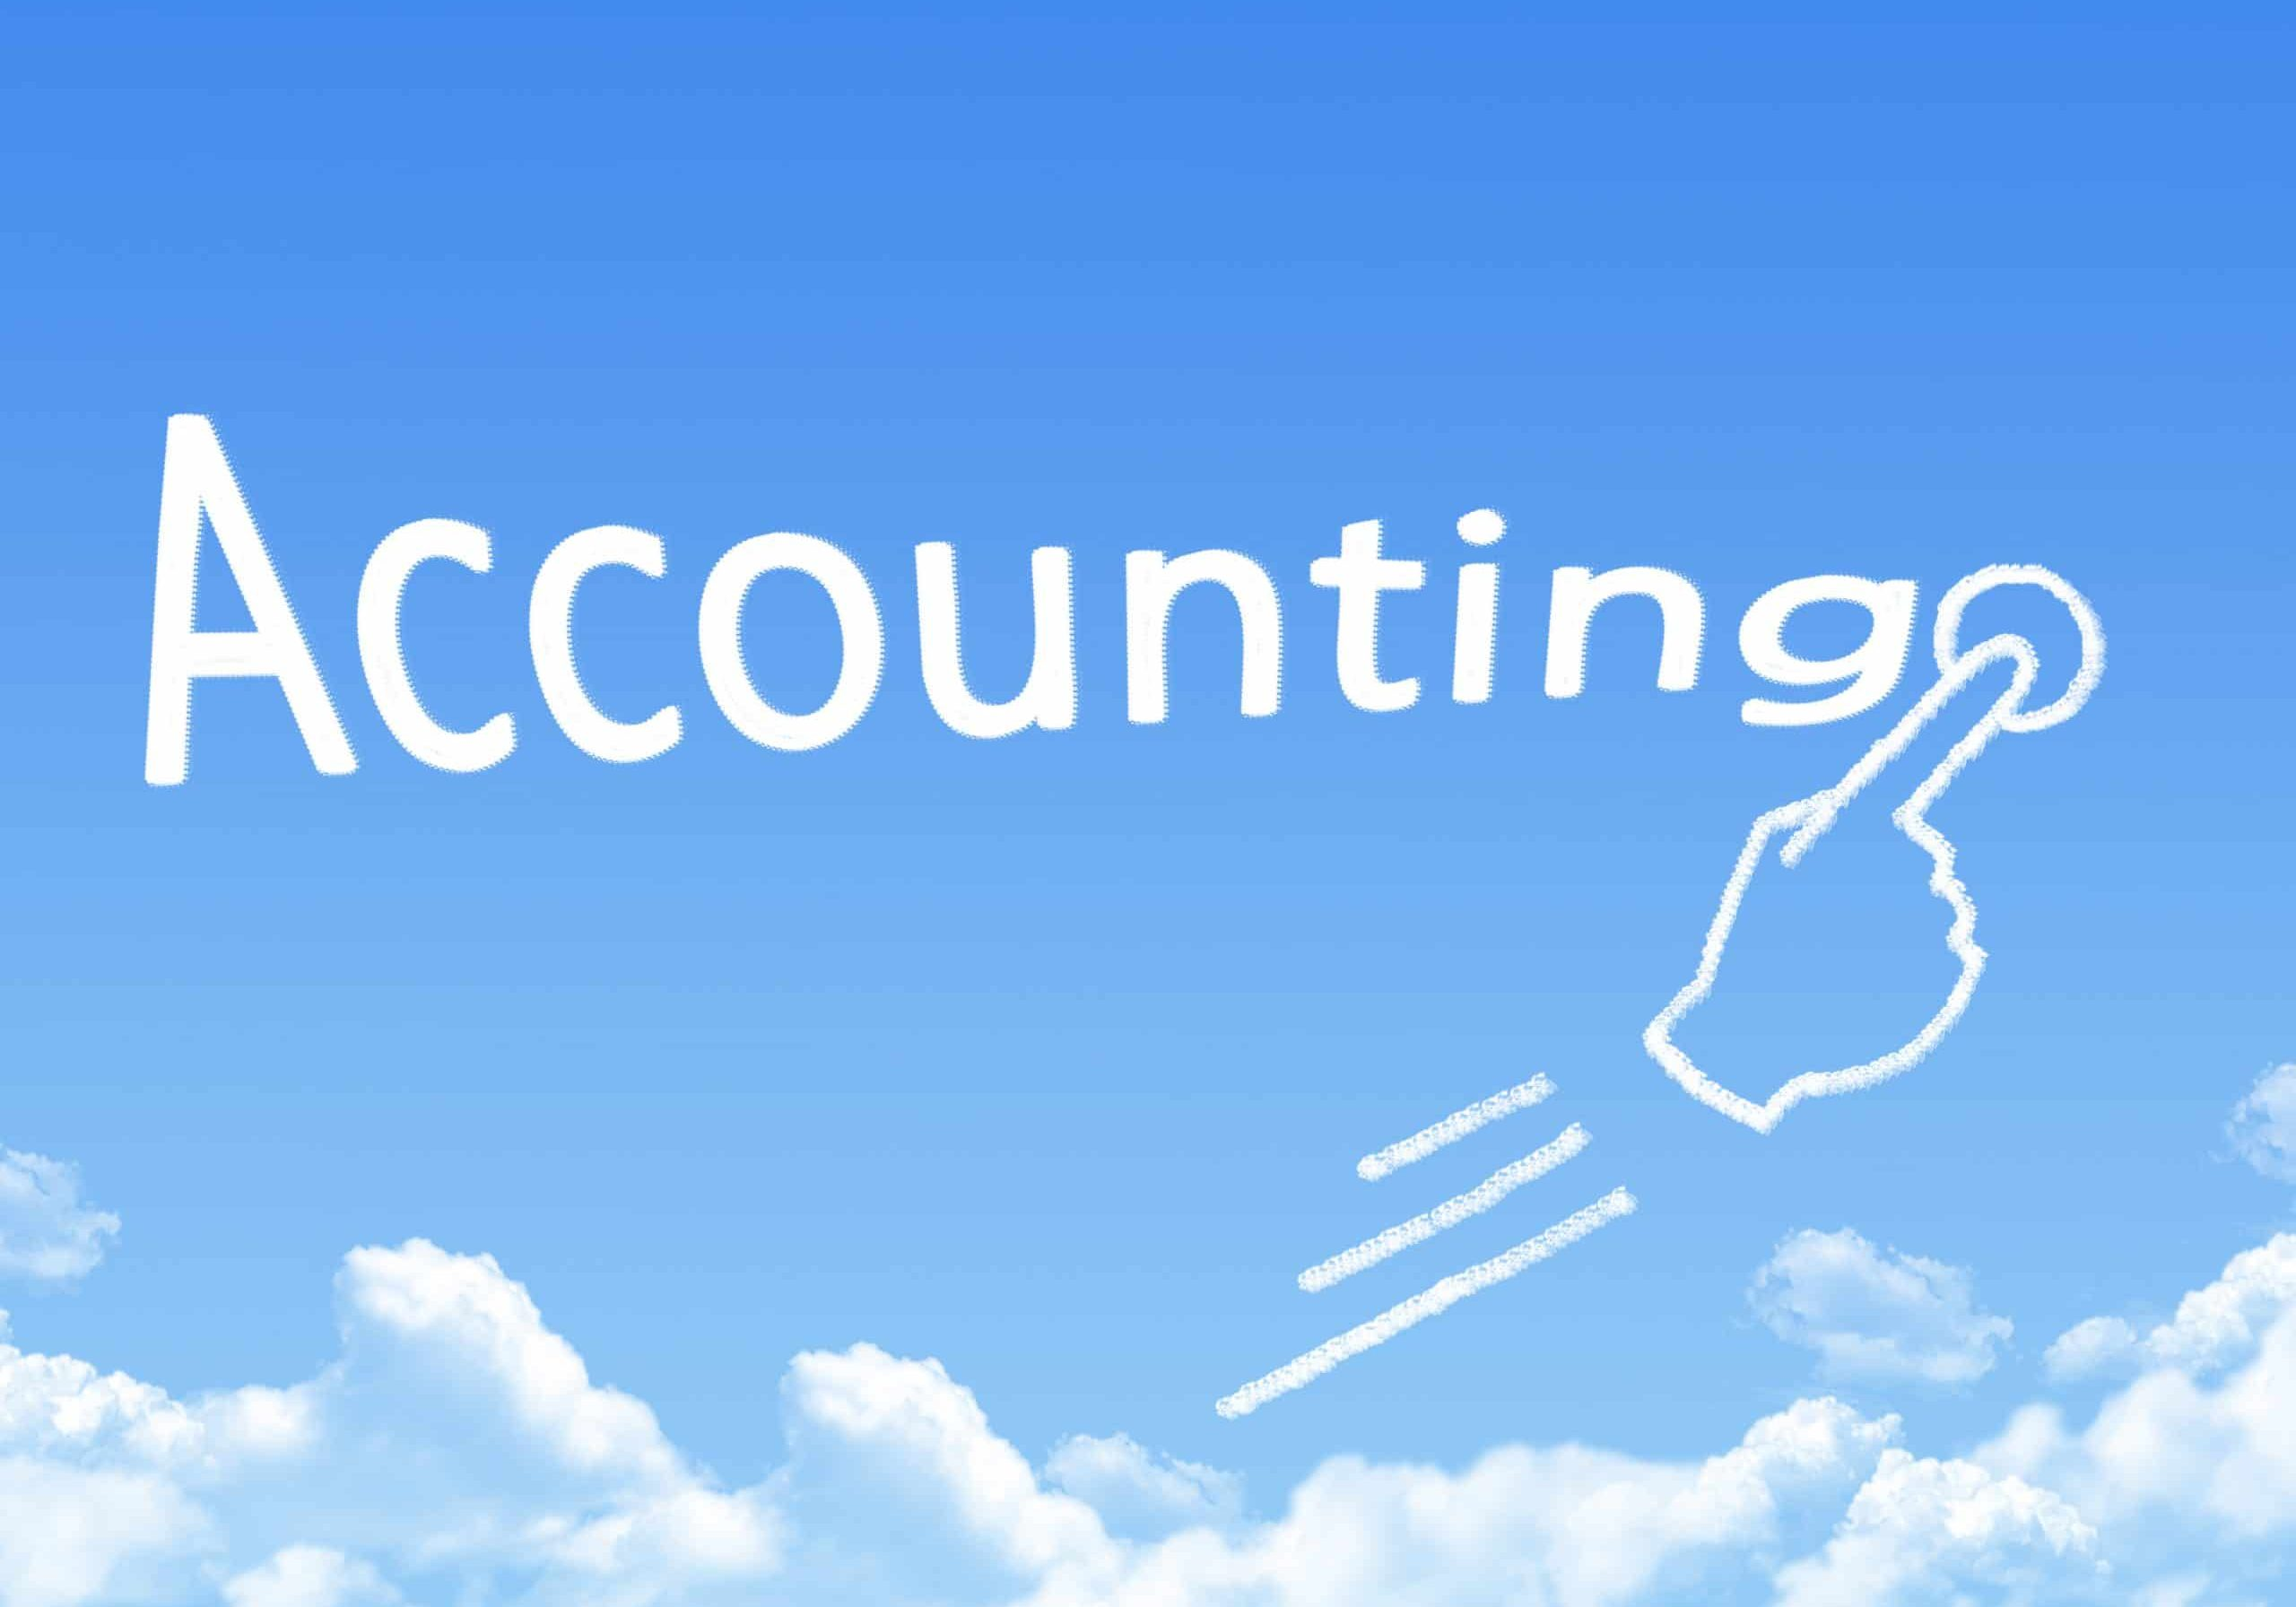 Accounting cloud storage